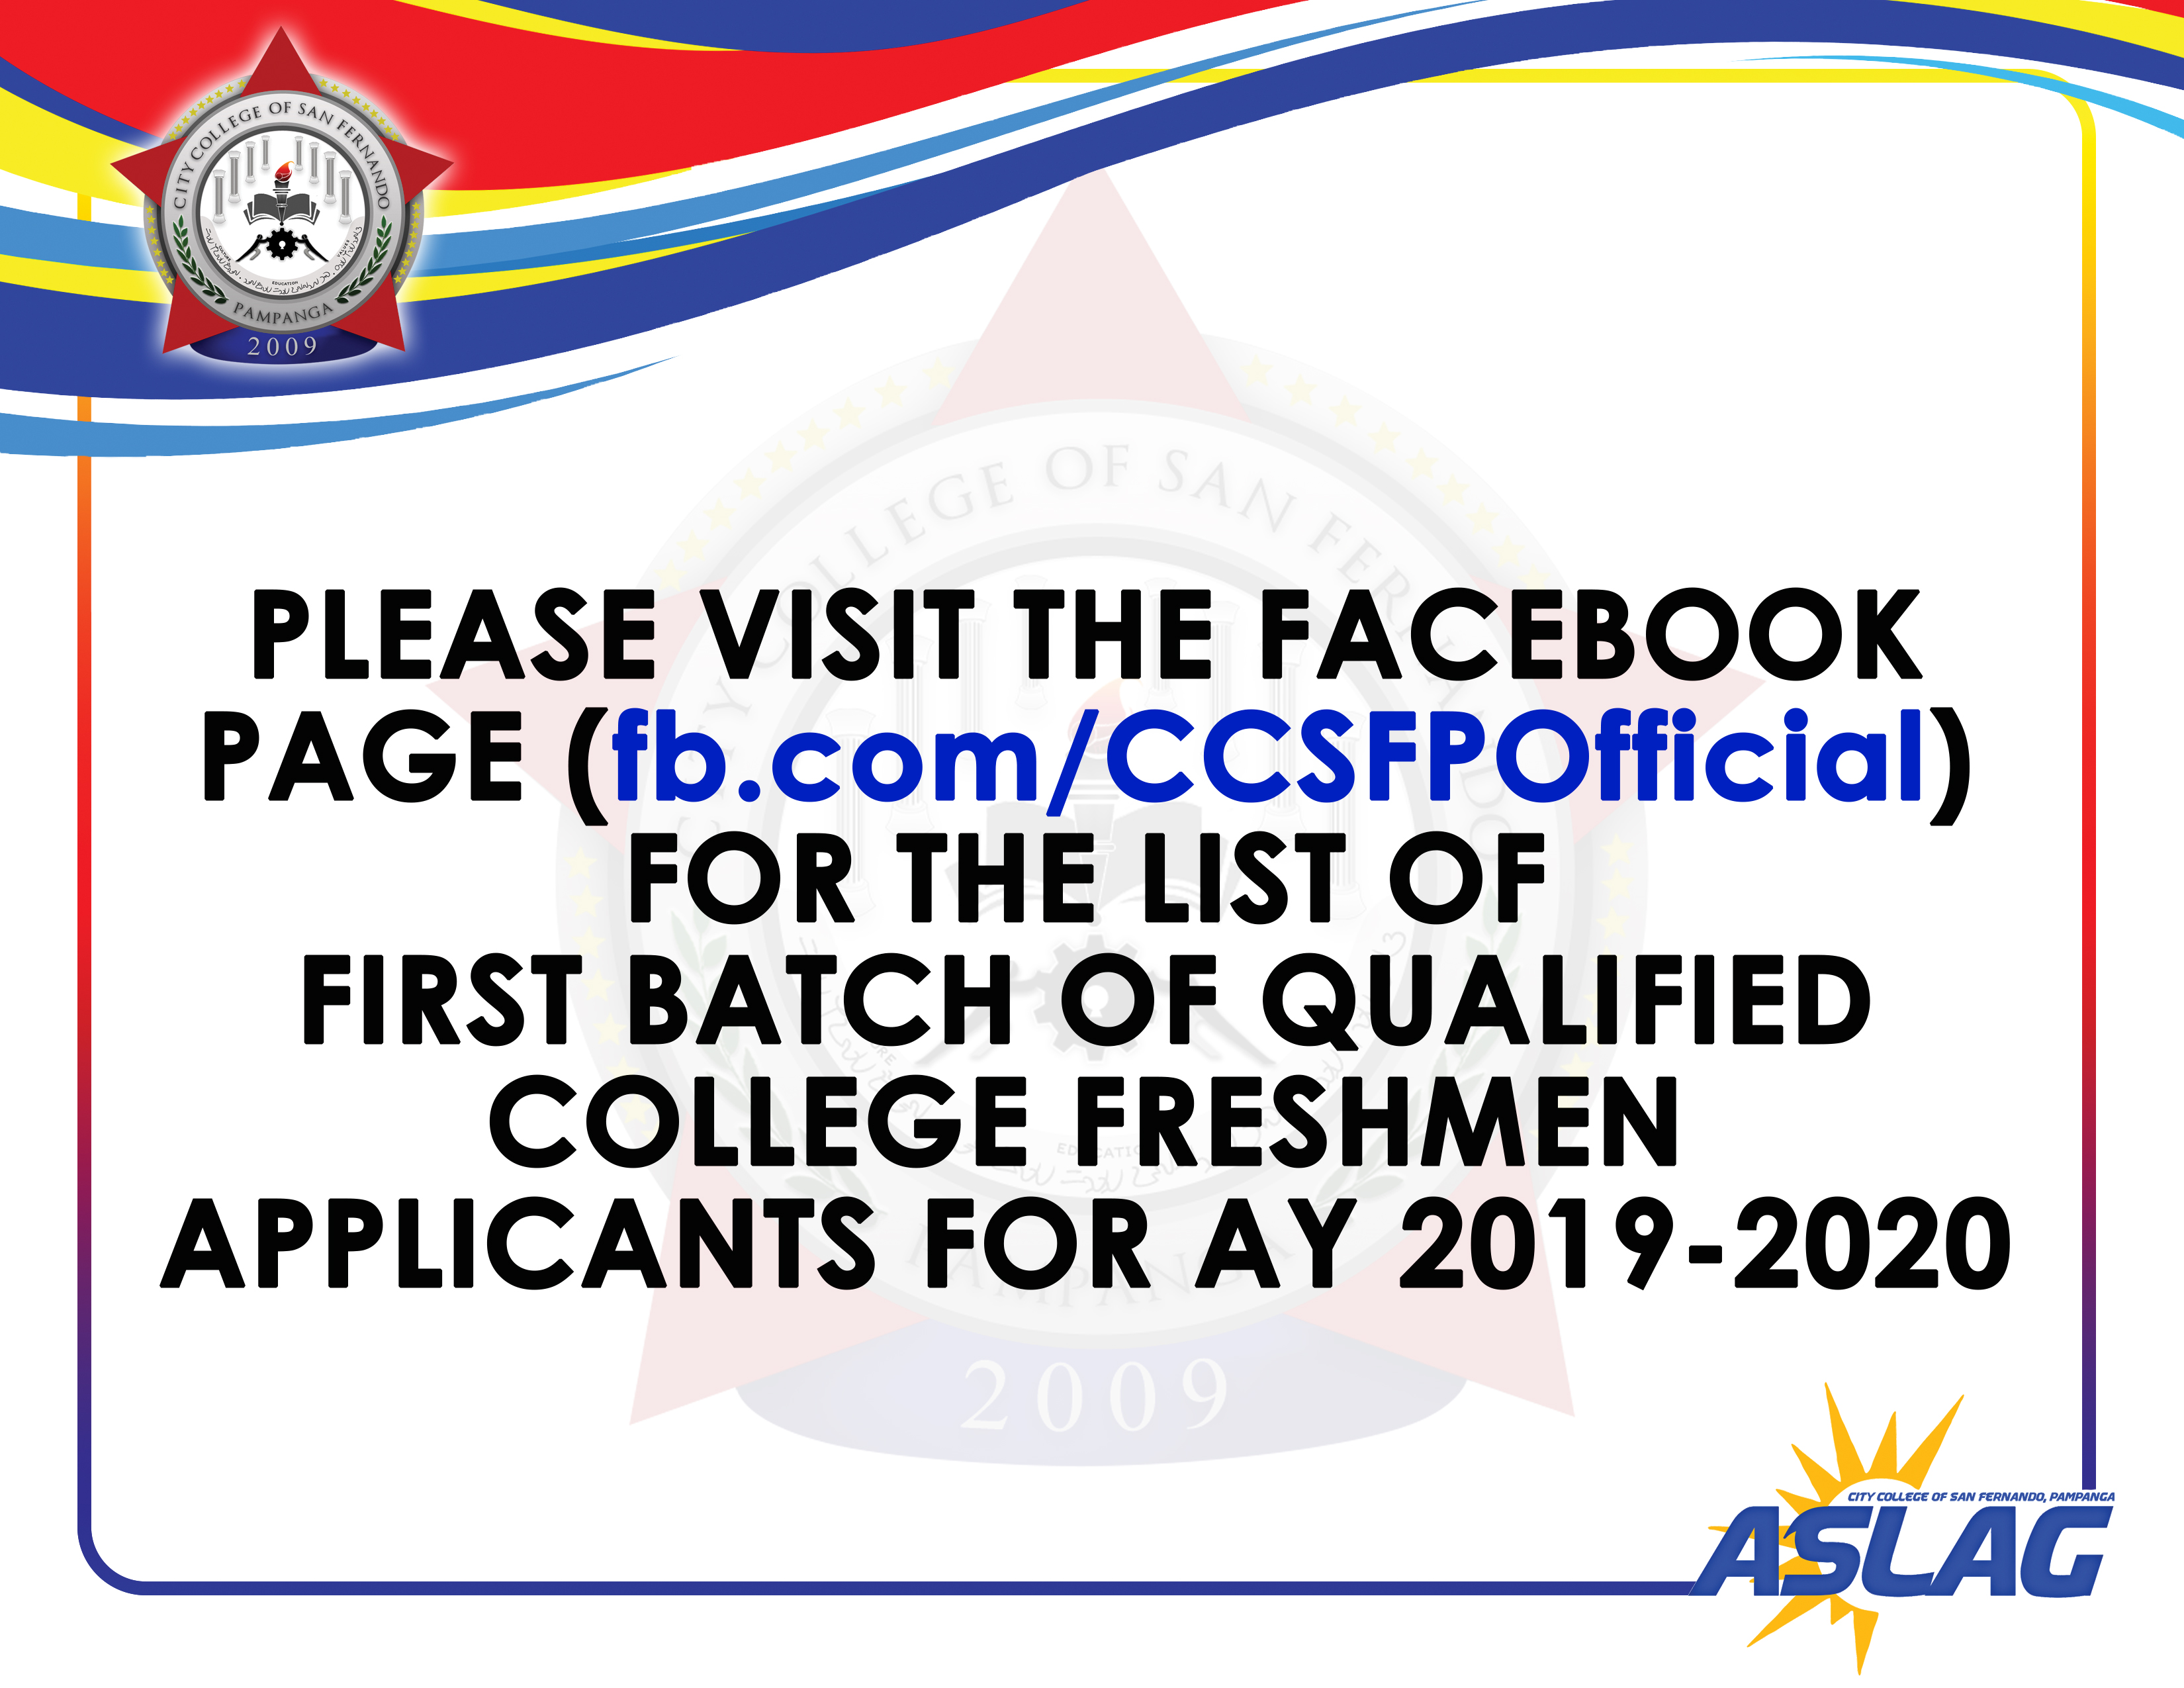 FIRST BATCH OF QUALIFIED COLLEGE FRESHMEN  APPLICANTS FOR AY 2019-2020